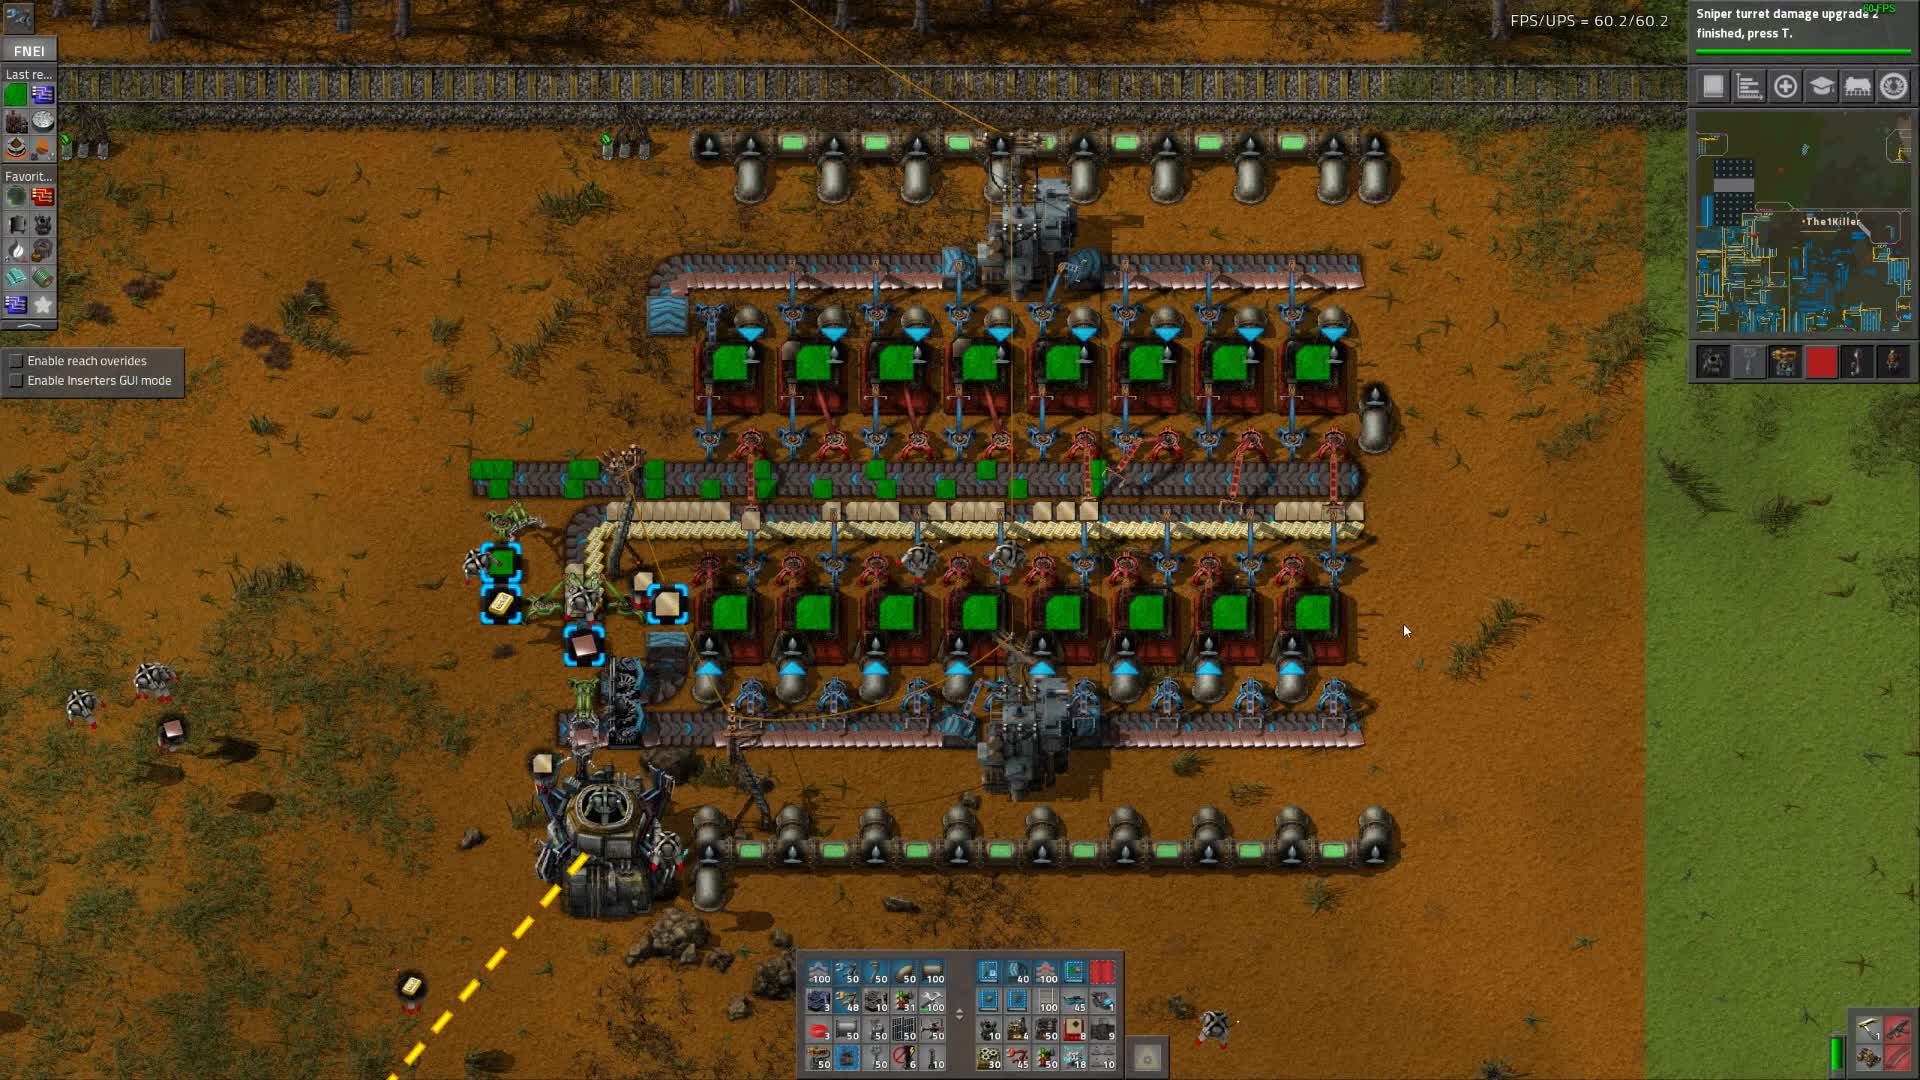 Factorio, wave, Factorio - Do the Wave GIFs